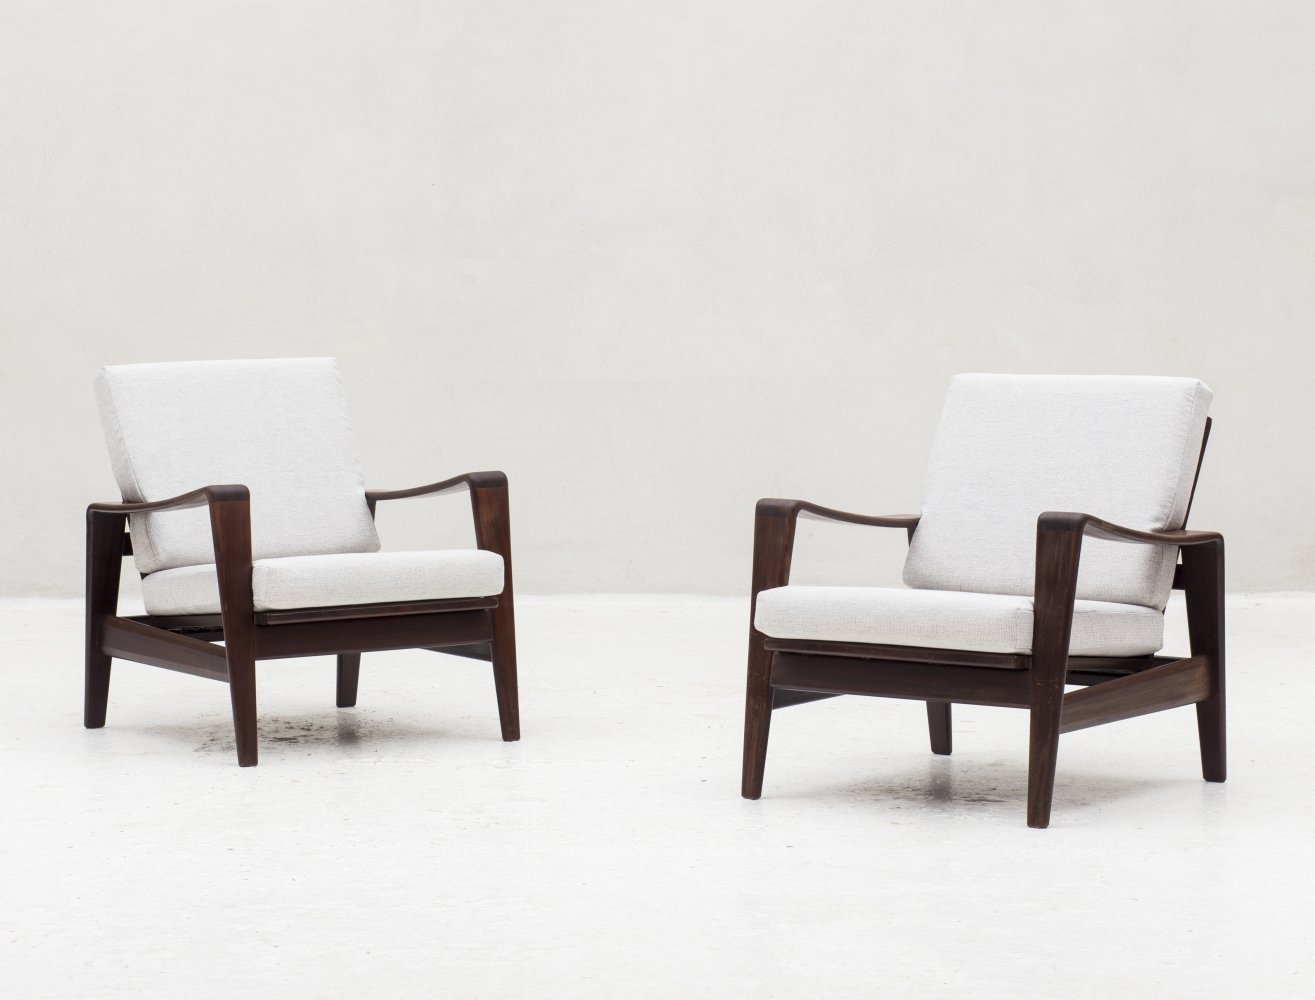 Set of 2 easy chairs by Arne Wahl Iversen for Komfort, Denmark 1960